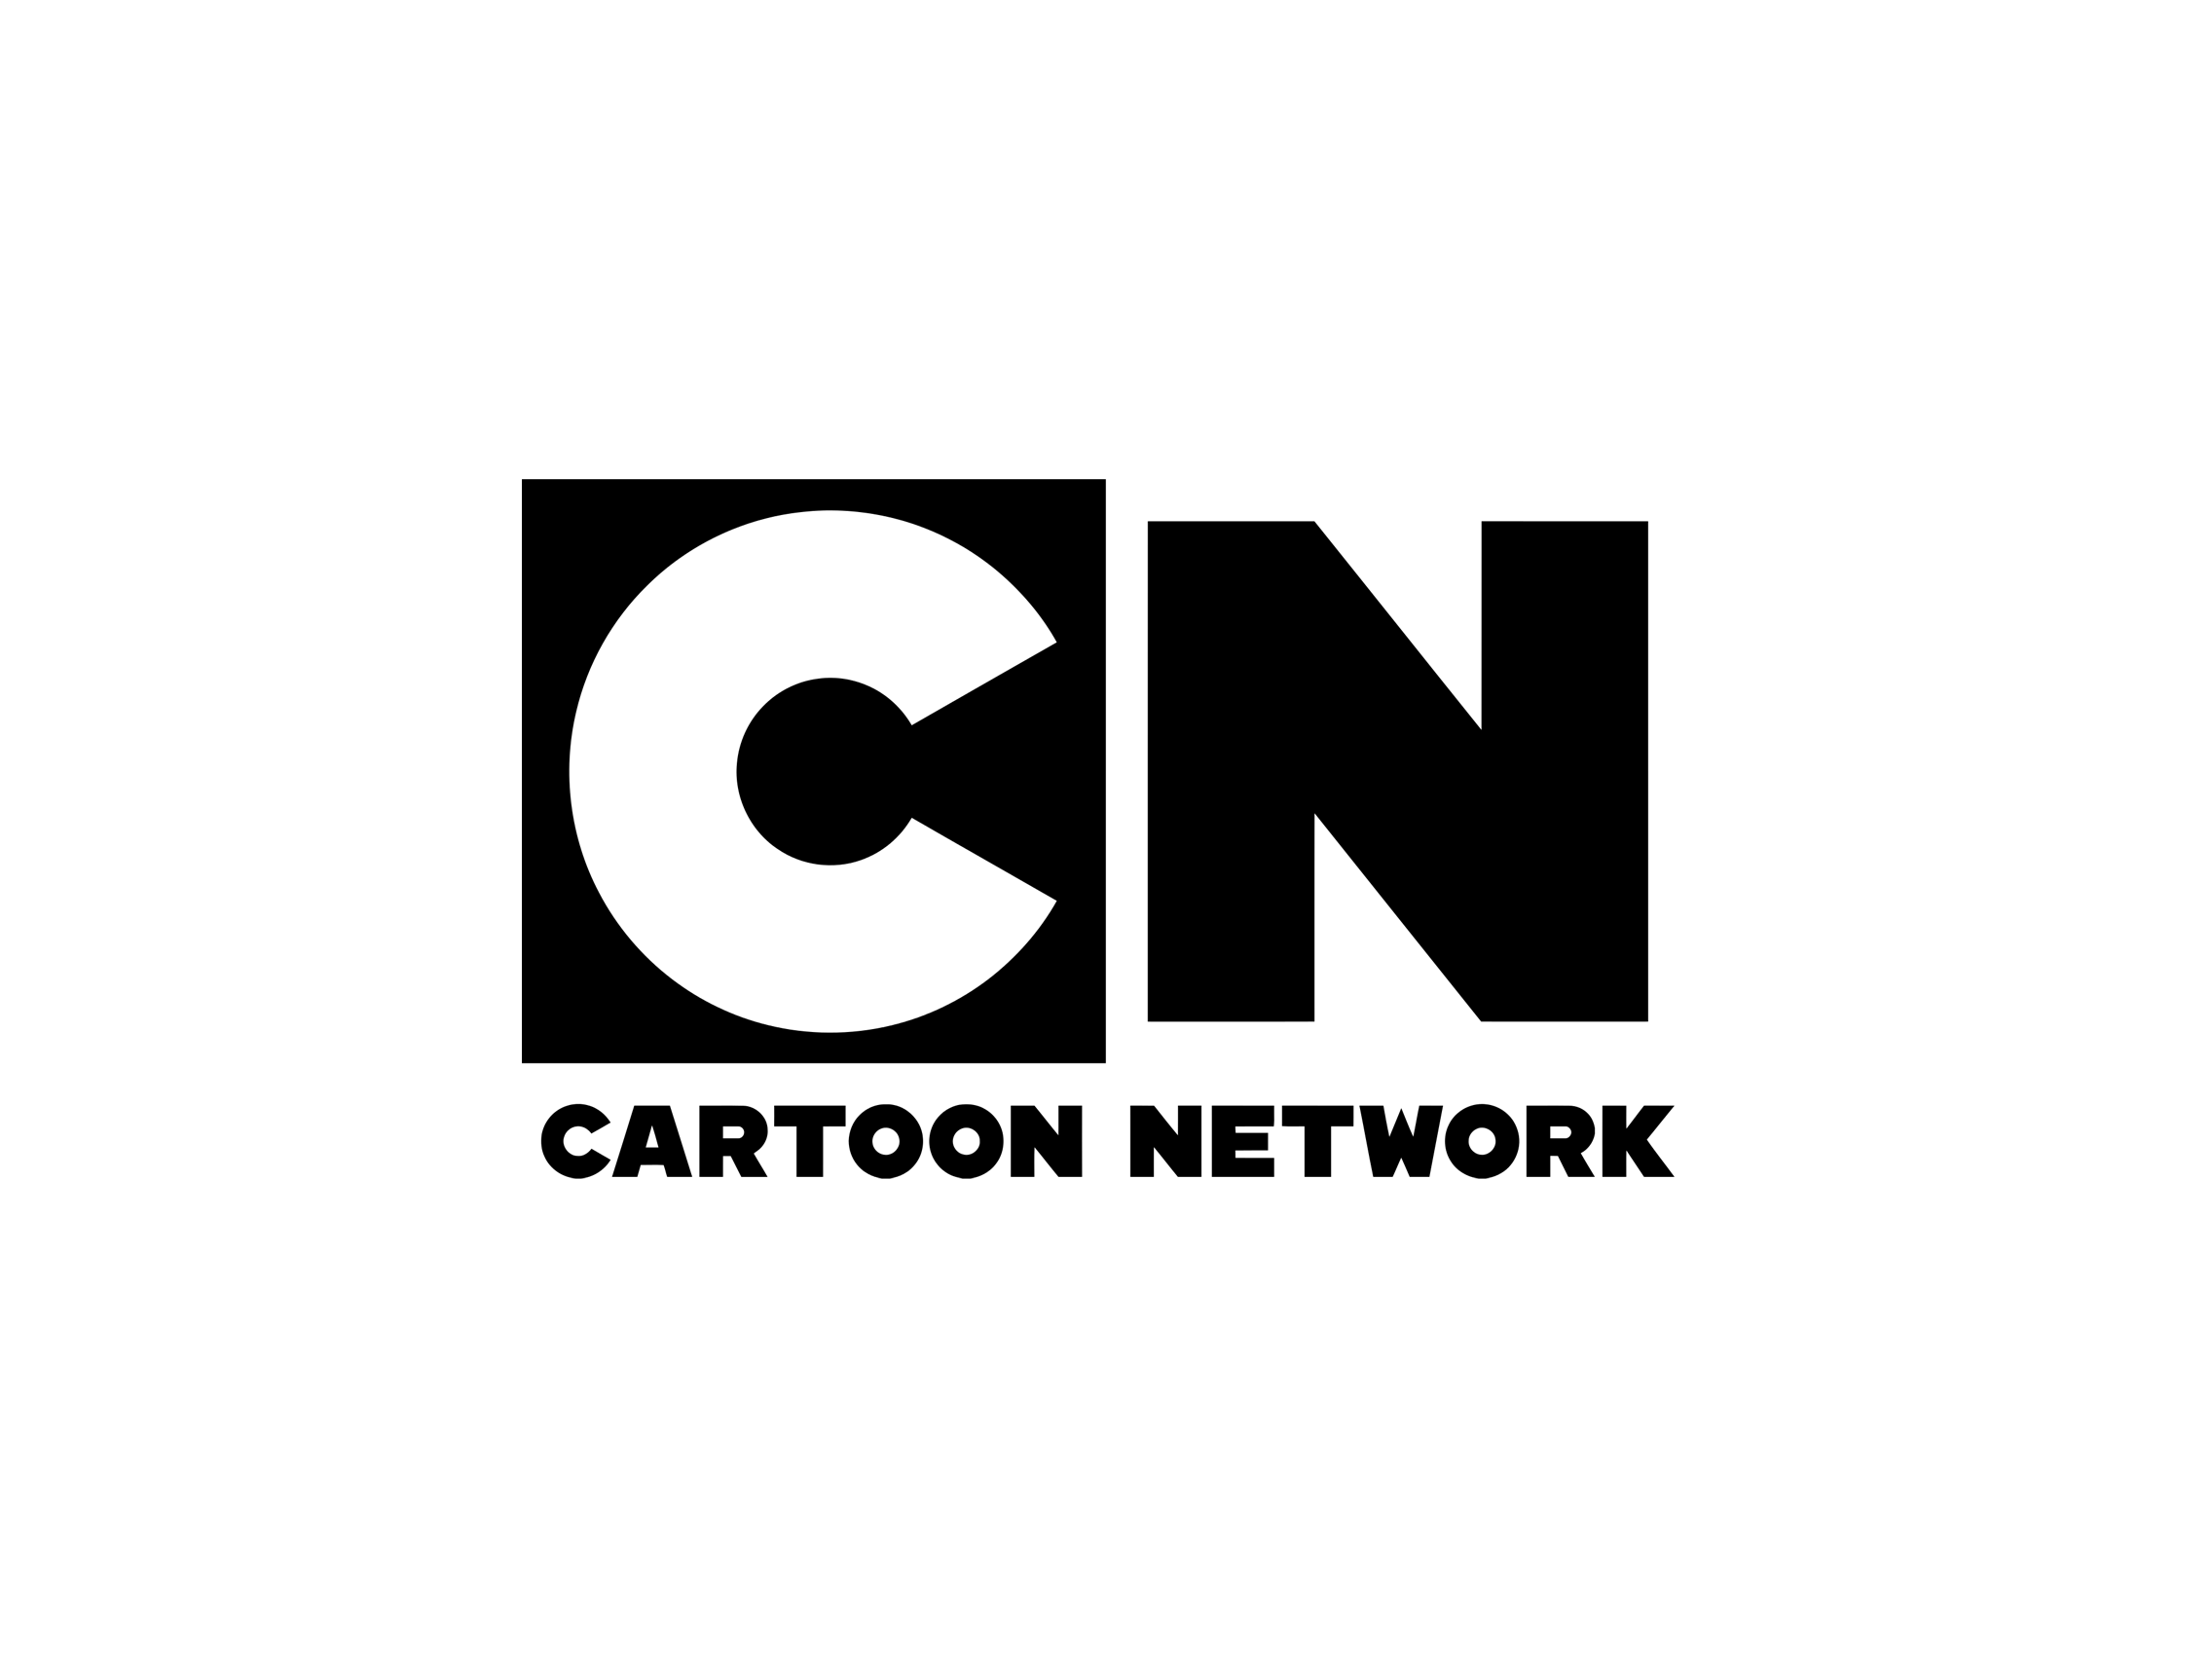 Cartoon Networks: Cartoon Network logo Logok.